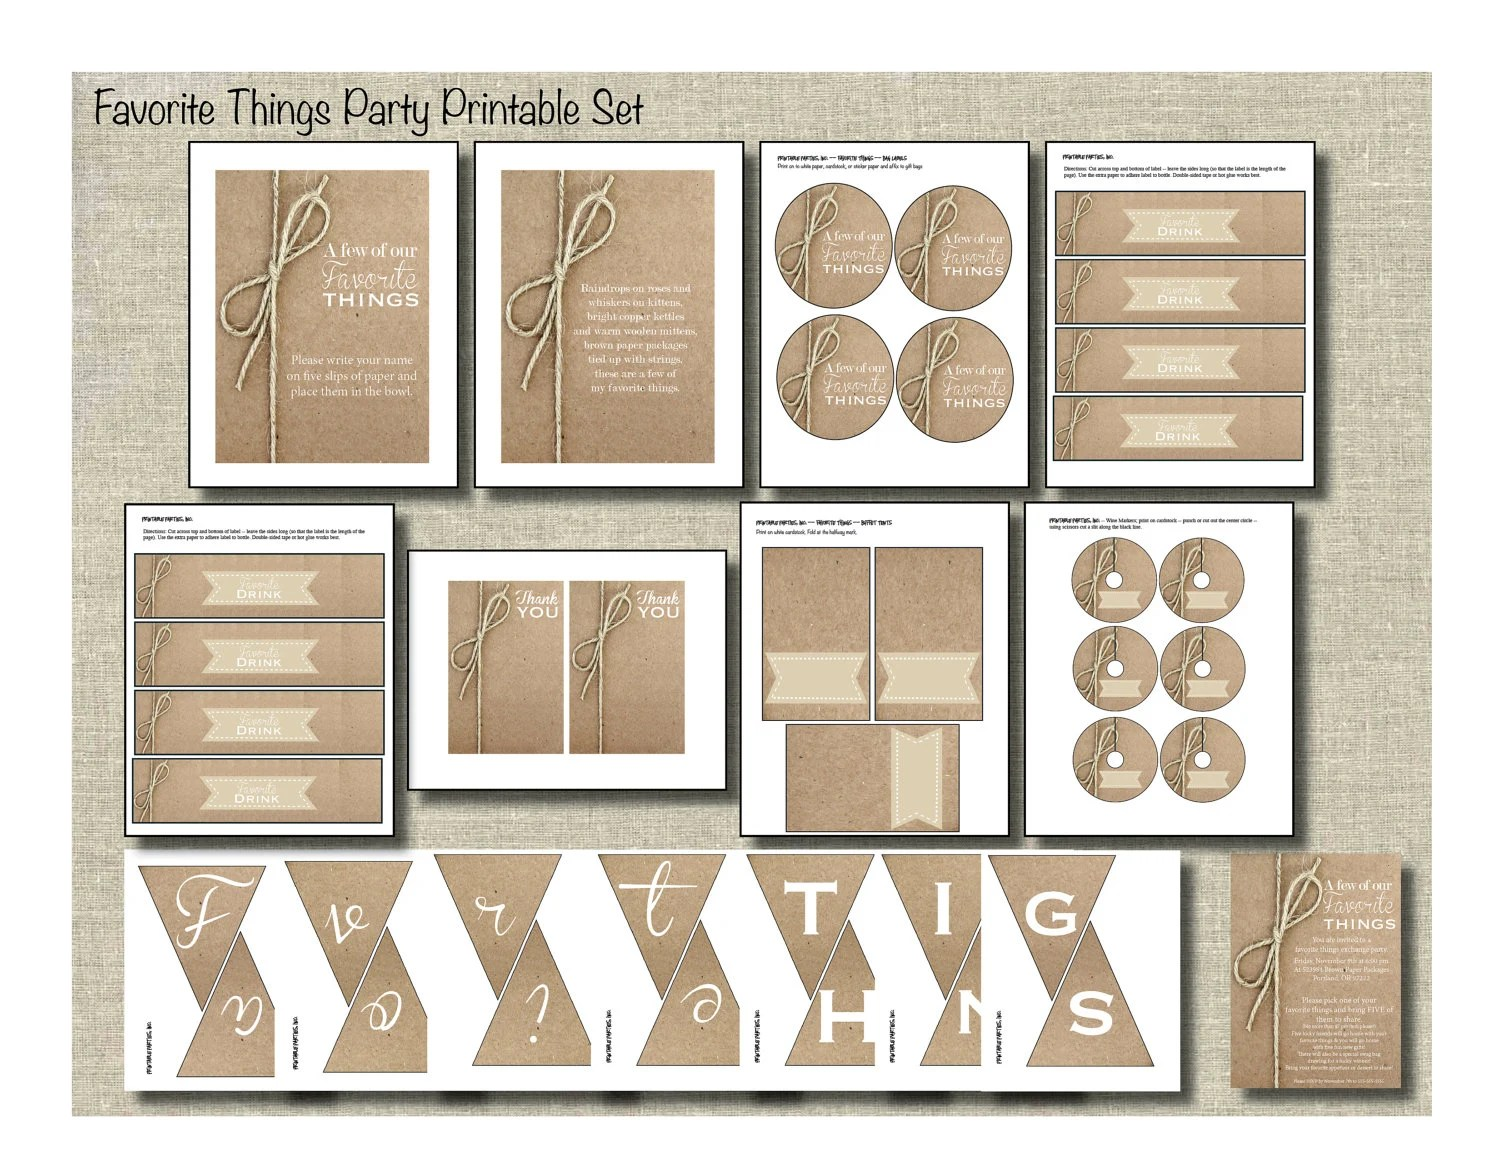 Favorite Things Party Printable Party Package